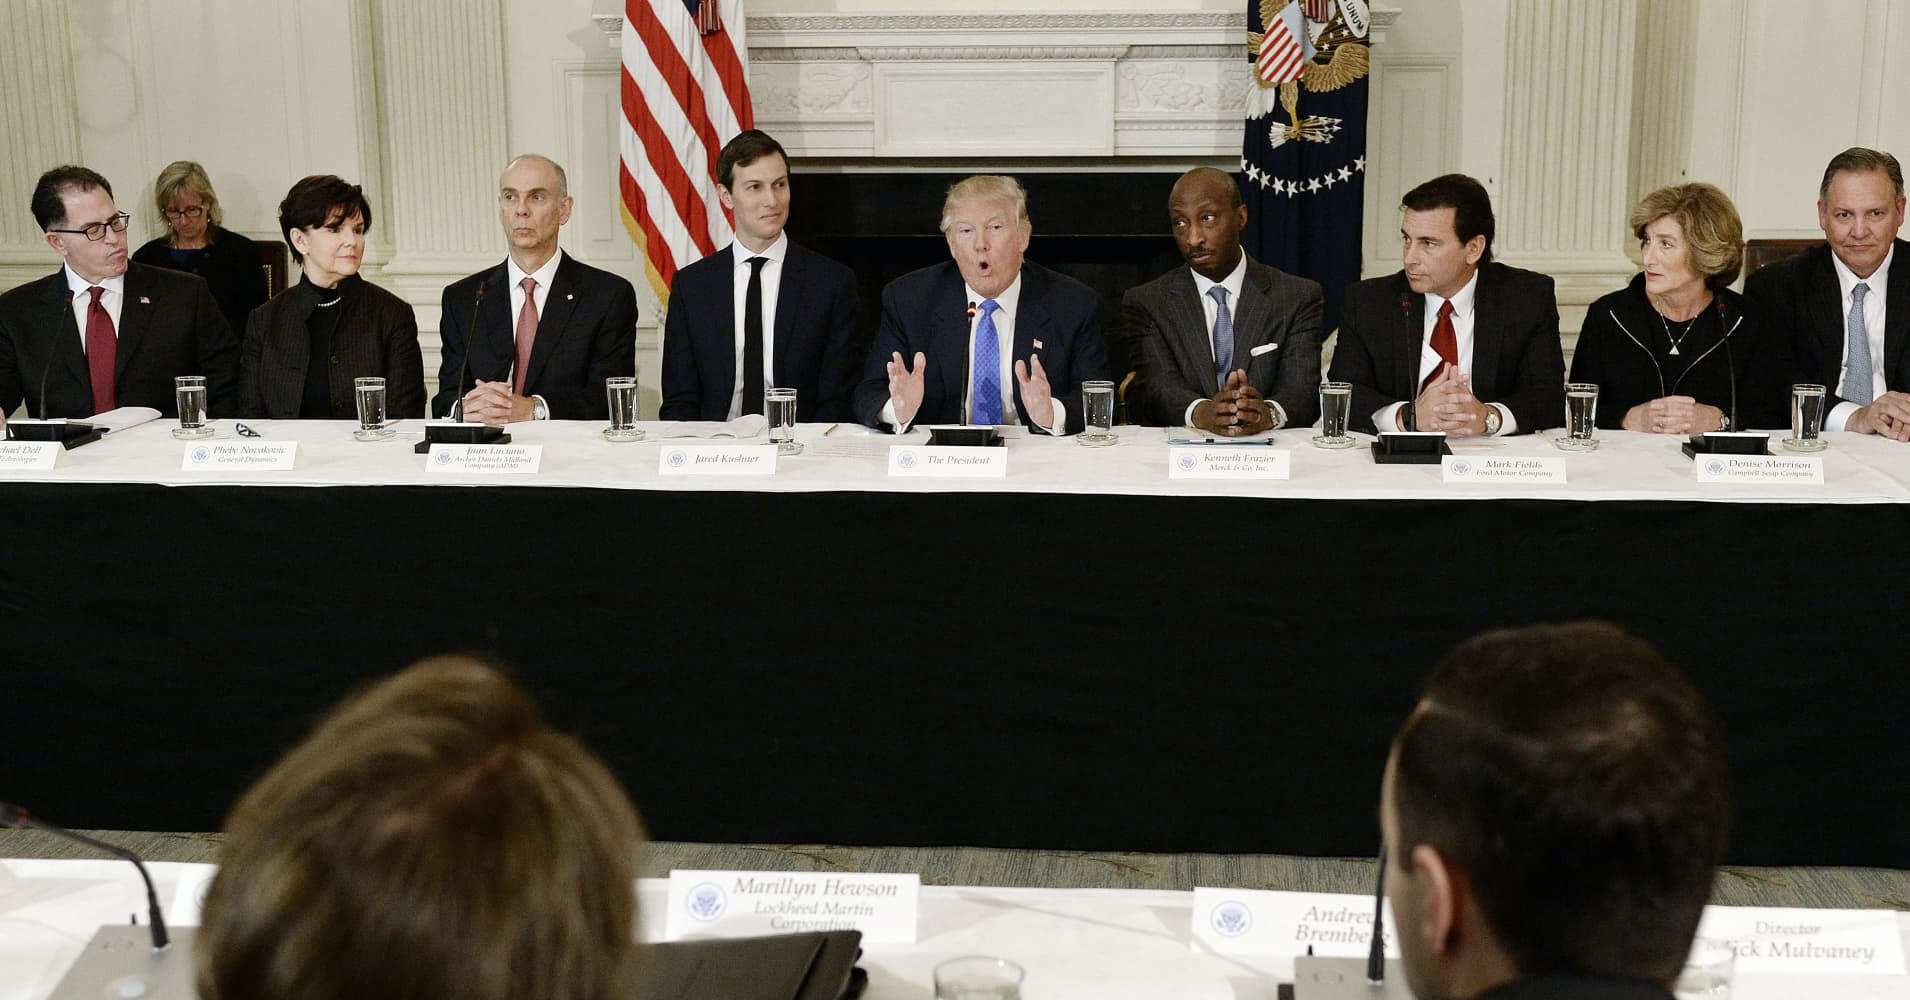 President Donald Trump, center, speaks while Michael Dell, chairman and chief executive officer of Dell Technologies Inc., from left, Phebe Novakovic, chairman and chief executive officer of General Dynamics Corp., Juan Luciano, chairman and chief executive officer of Archer Daniels Midland Co., Jared Kushner, senior White House advisor, Kenneth Frazier, chairman and chief executive officer of Merck & Co., Mark Fields, president and chief executive officer of Ford Motor Co., and Denise Morrison, president and chief executive officer of Campbell Soup Co., listen during a meeting with manufacturing executives in the State Dining Room of the White House in Washington, D.C., U.S., on Thursday, Feb. 23, 2017.